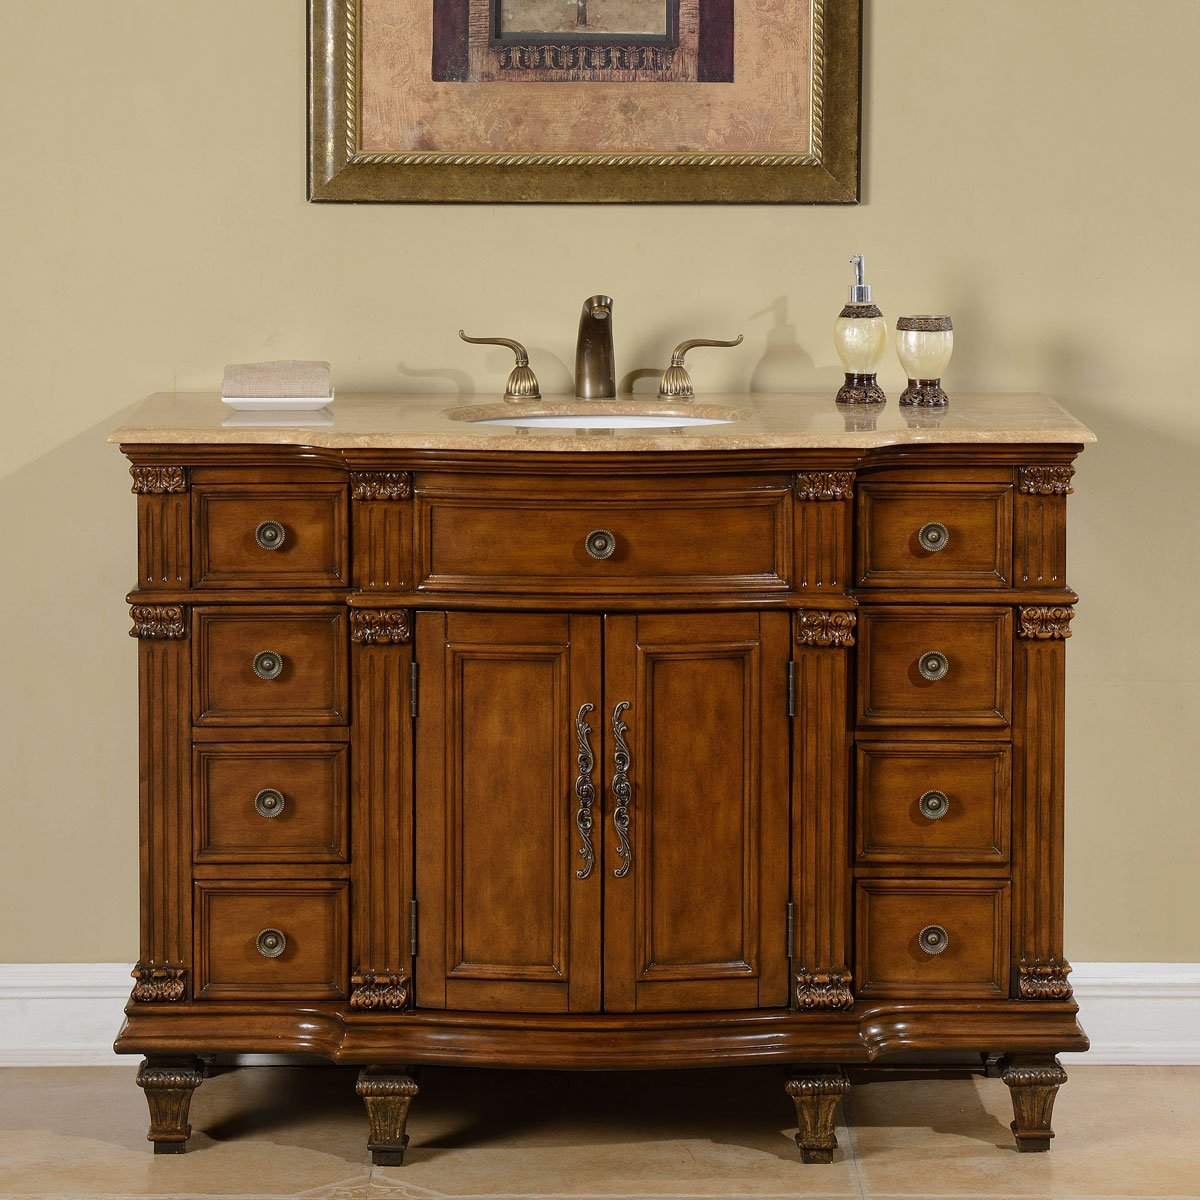 Silkroad Exclusive 48-inch Travertine Stone Top Bathroom Single Sink Vanity Cabinet